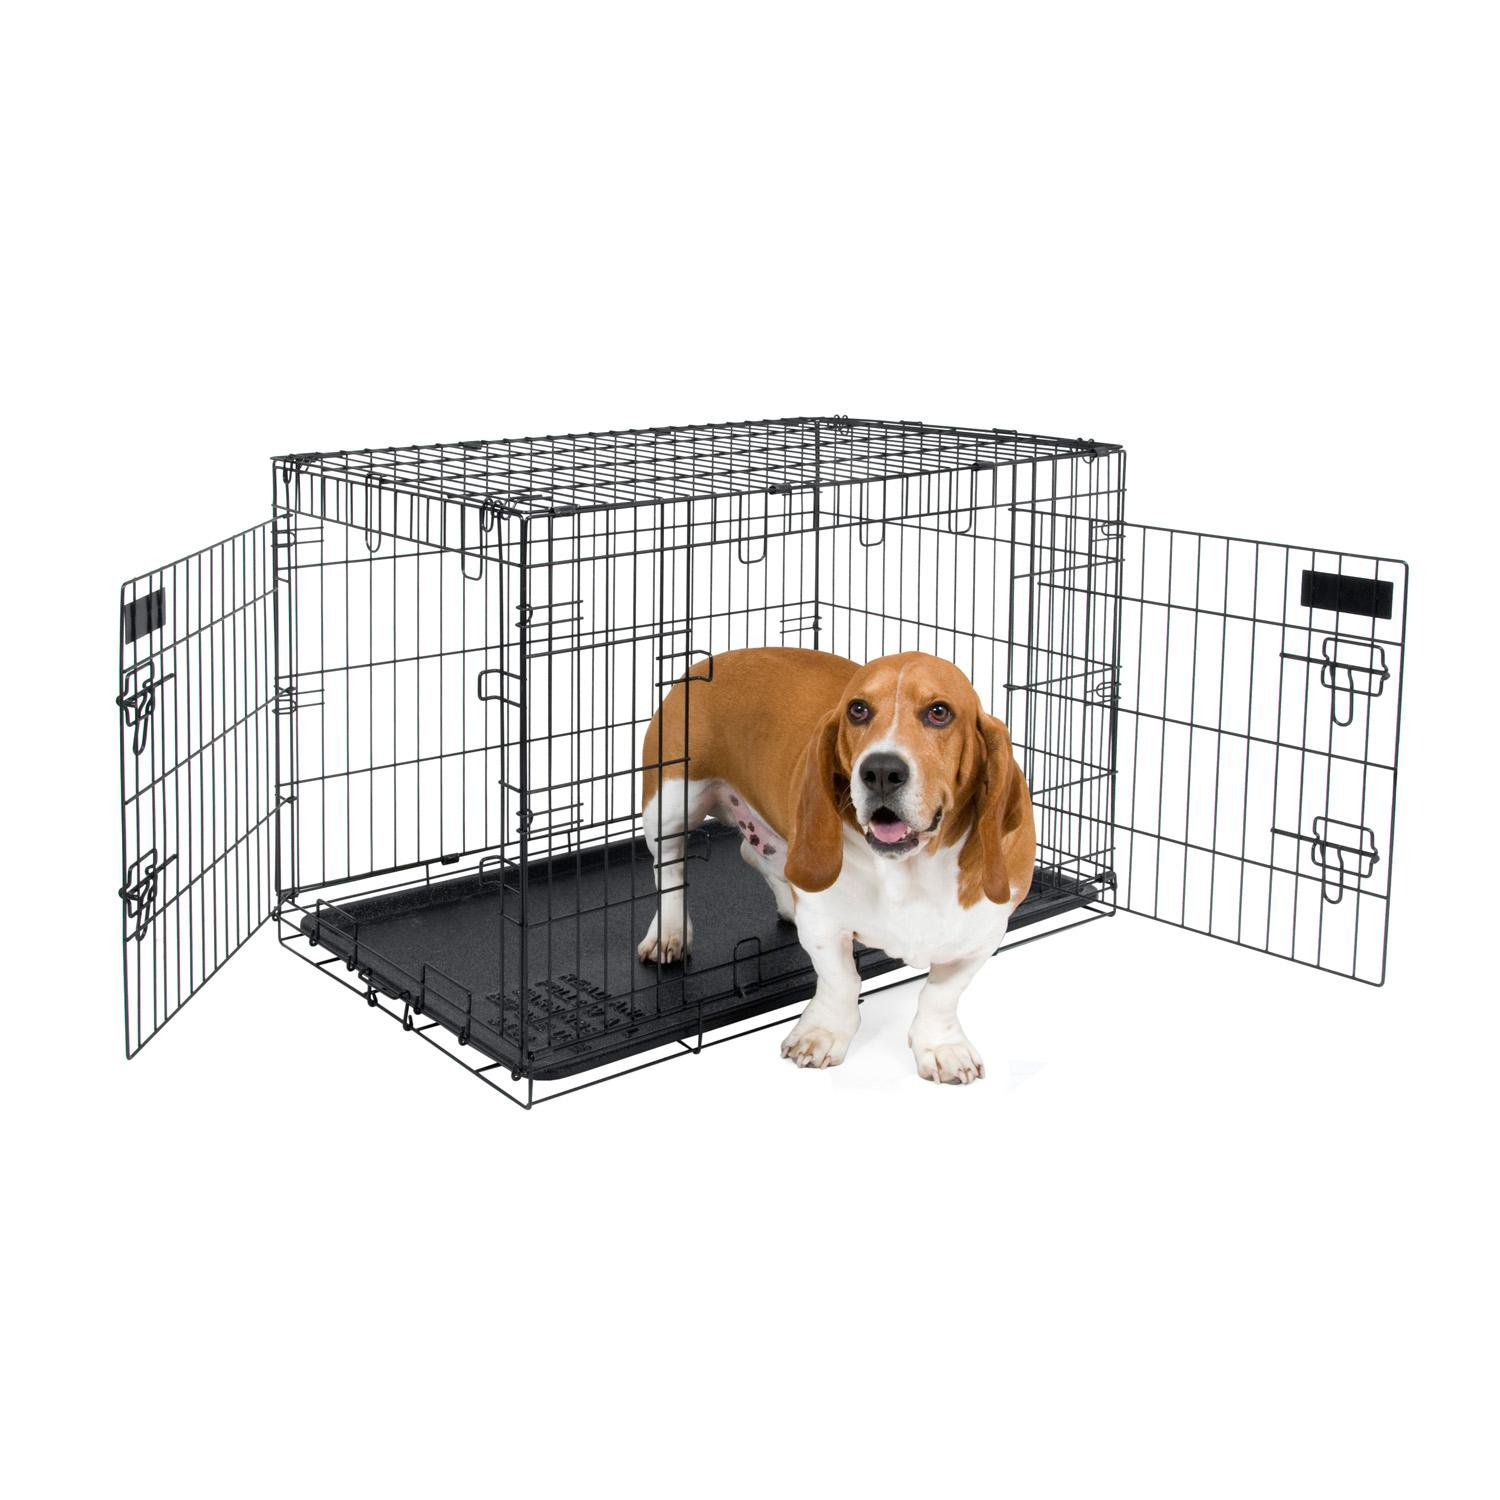 Petmate 2 Door Training Retreat Wire Dog Kennel in Black | Petco